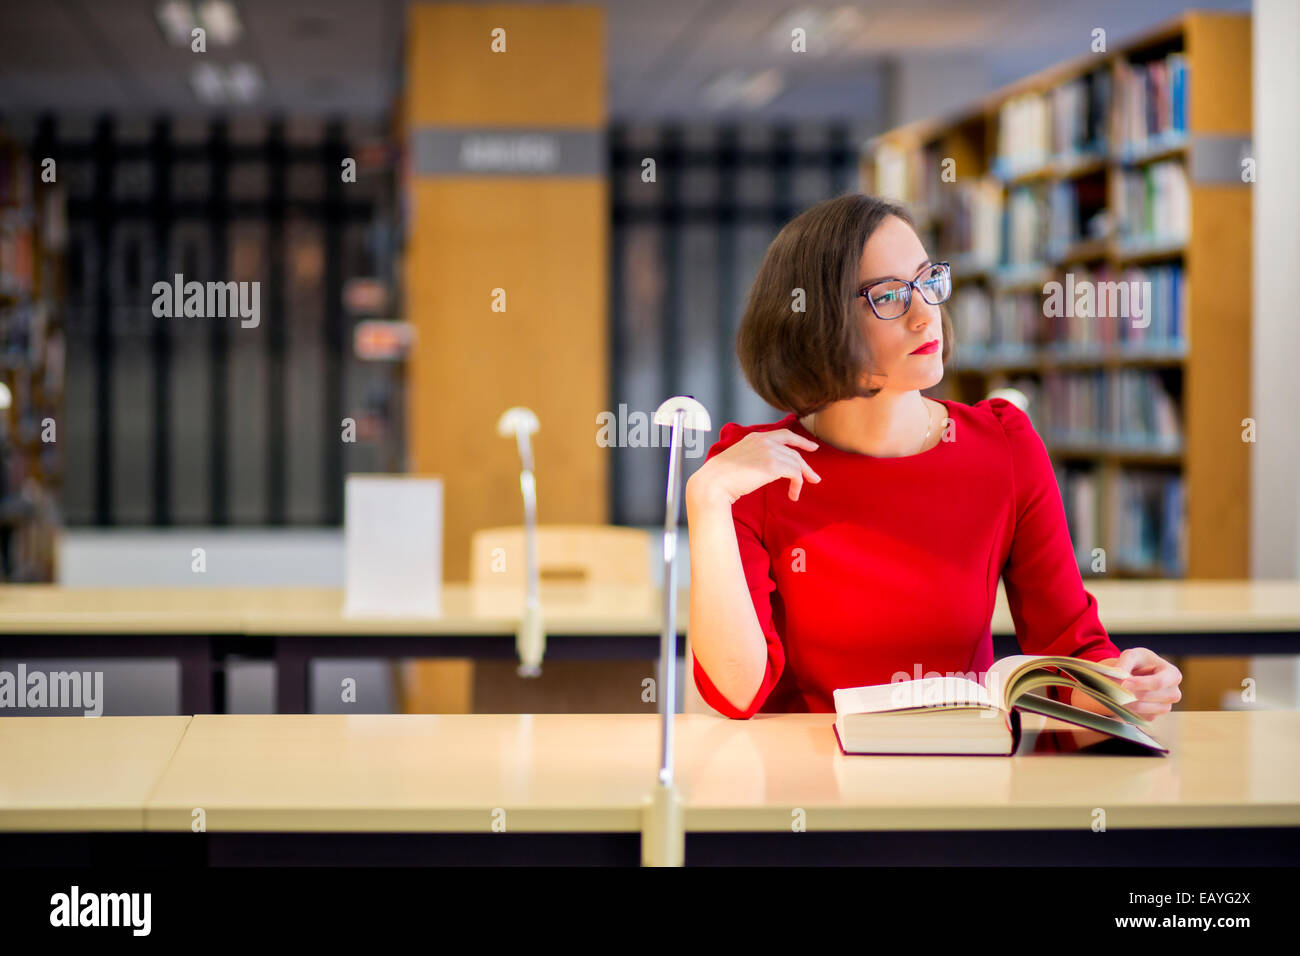 Young woman with glasses in library looking left - Stock Image